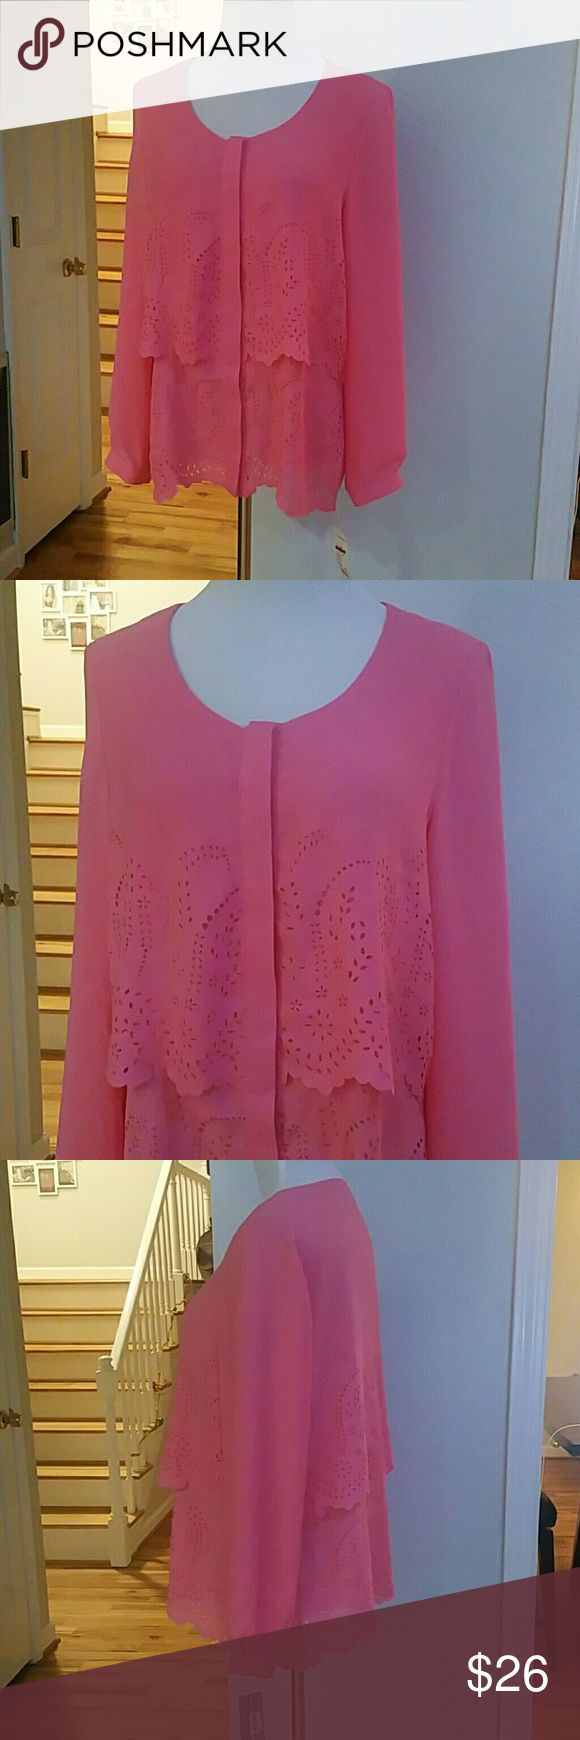 NWT NY COLLECTION TOP NWT NY Collection Tiered Laser-Cut Top Color : Camellia  Size : Large  Materials : 100% POLYESTER NY Collection Tops